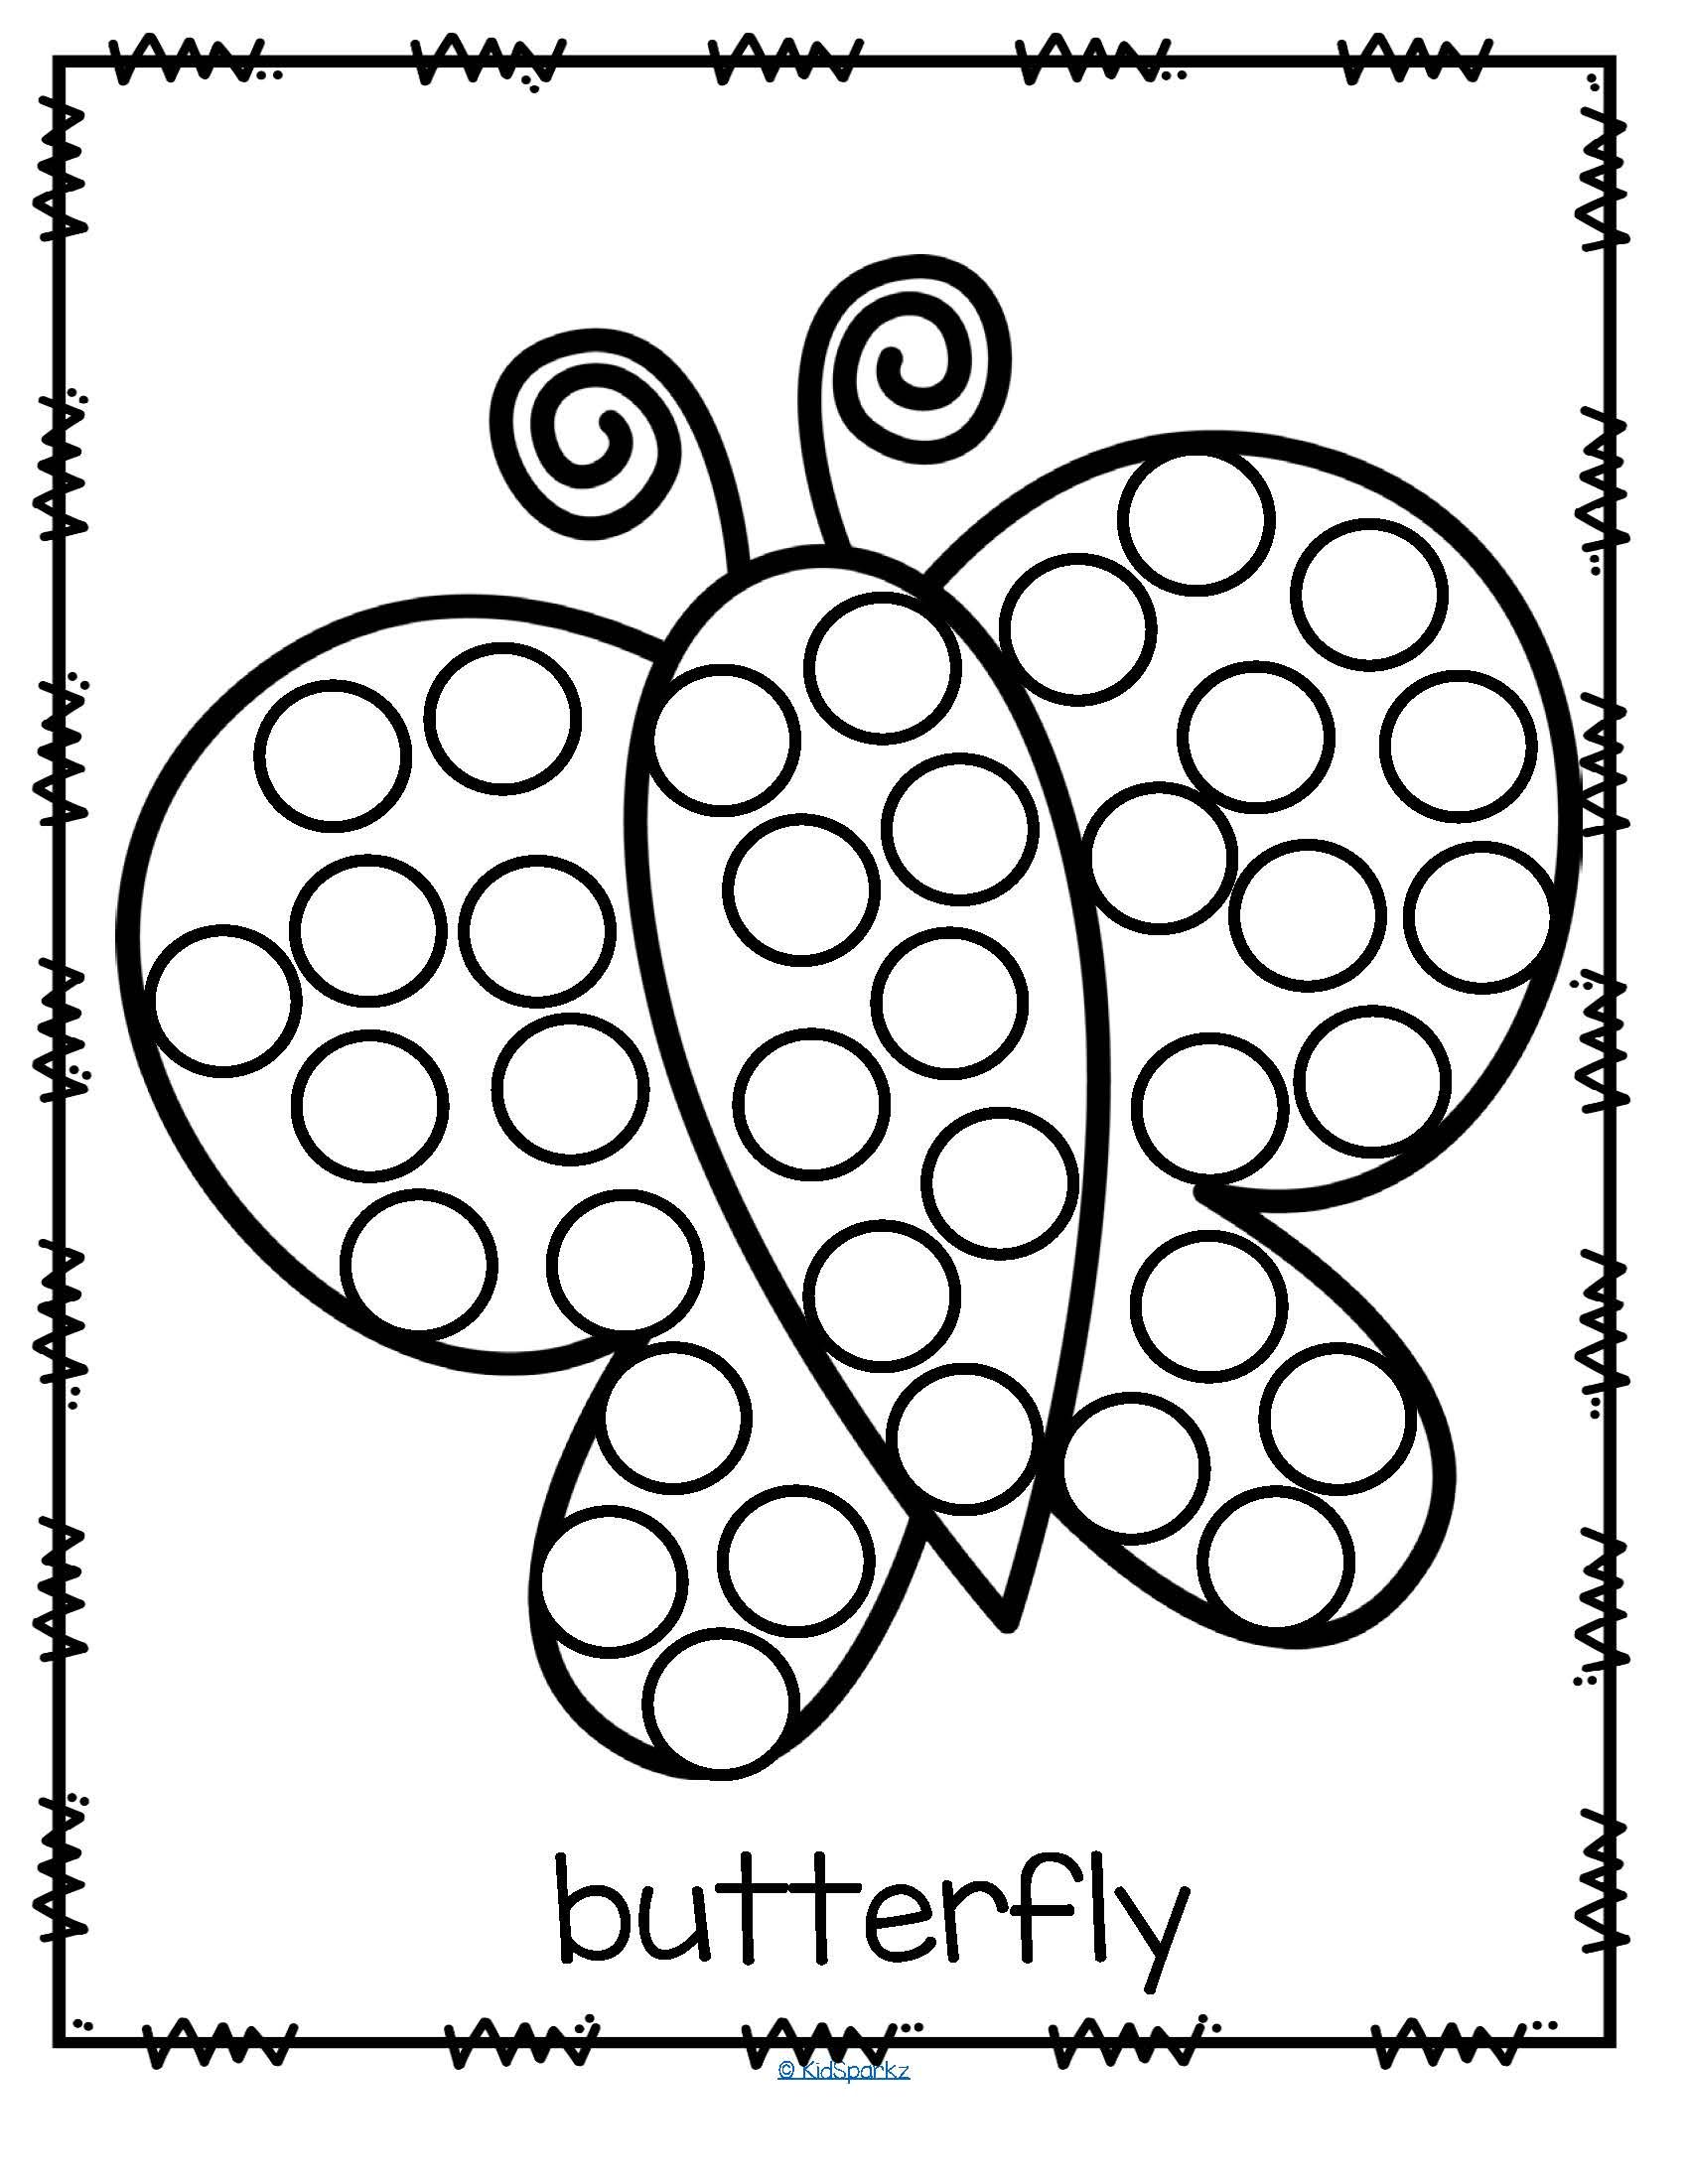 Dot Art Coloring Pages At Getdrawings Com Free For